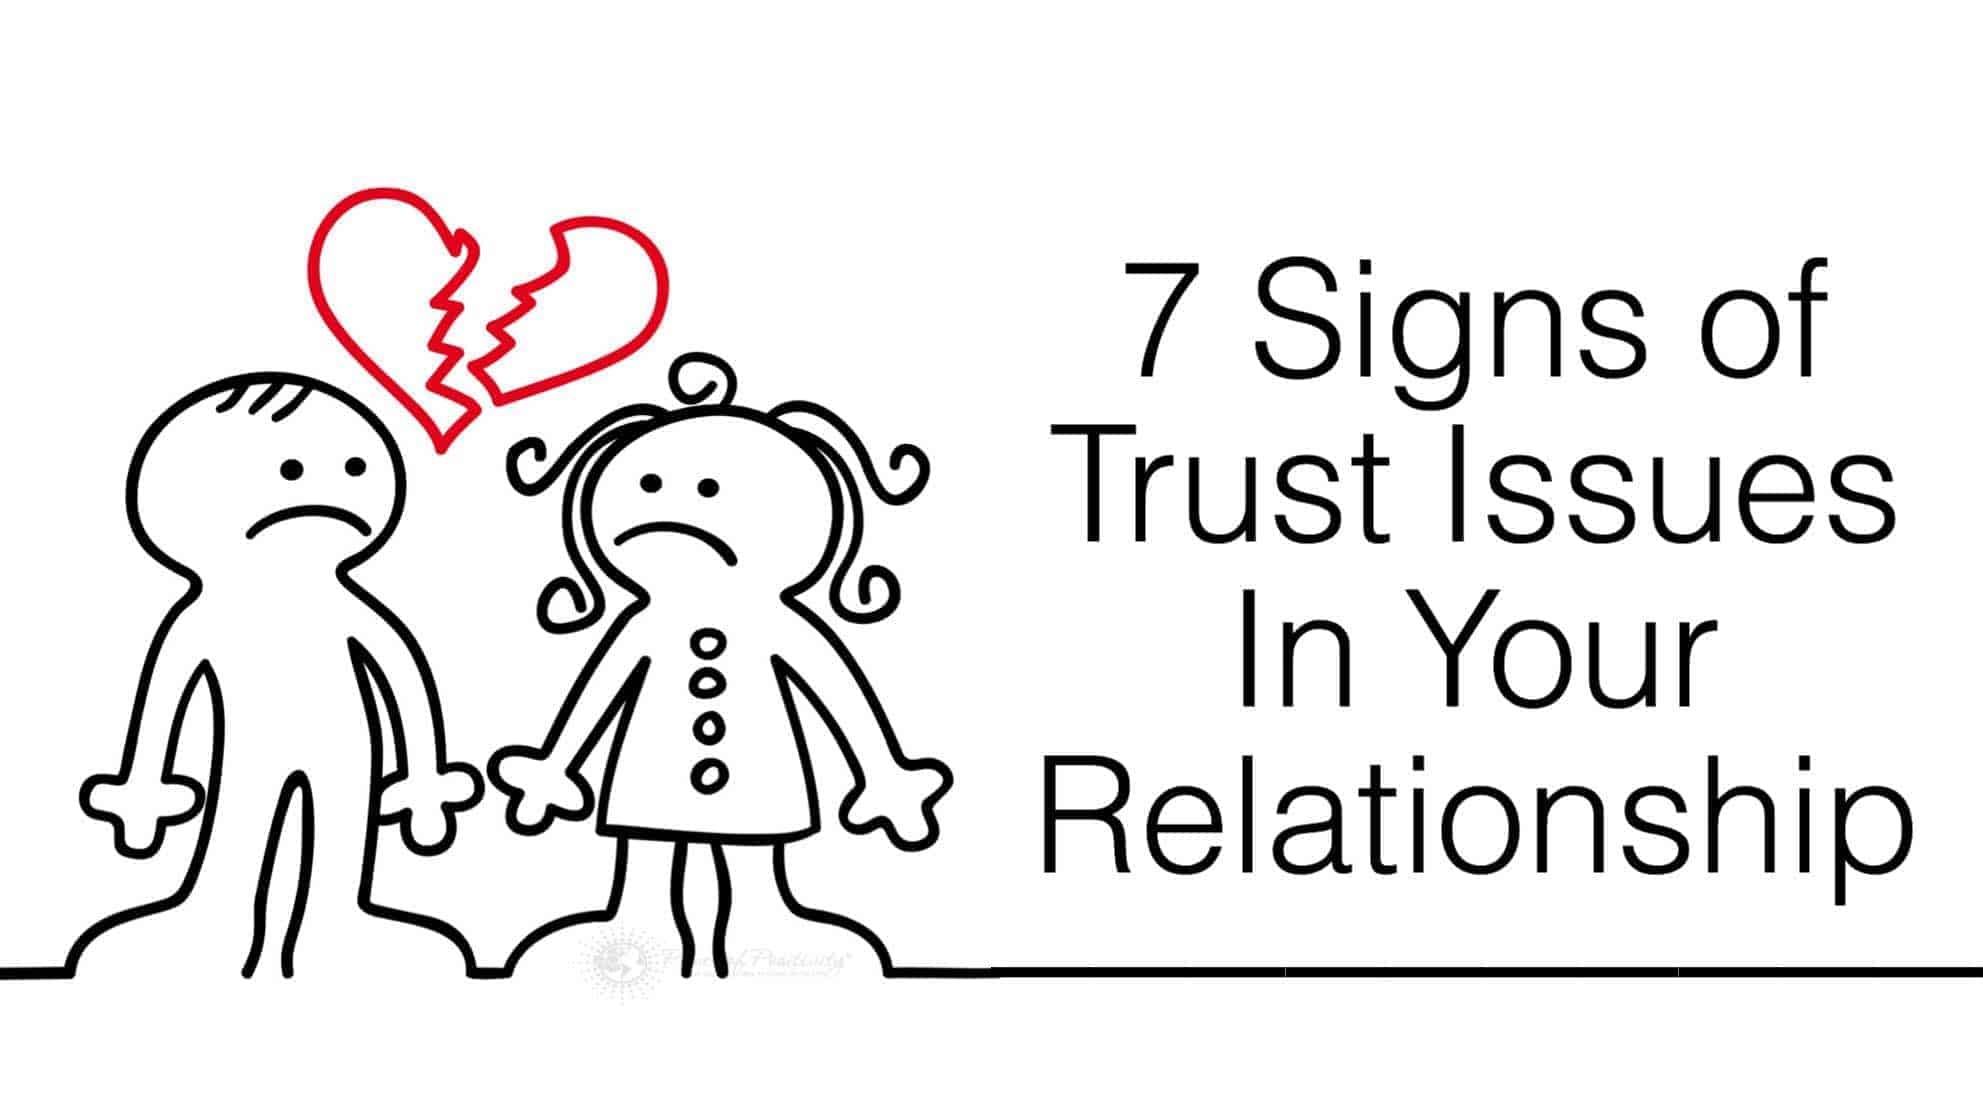 7 signs of trust issues in your relationship